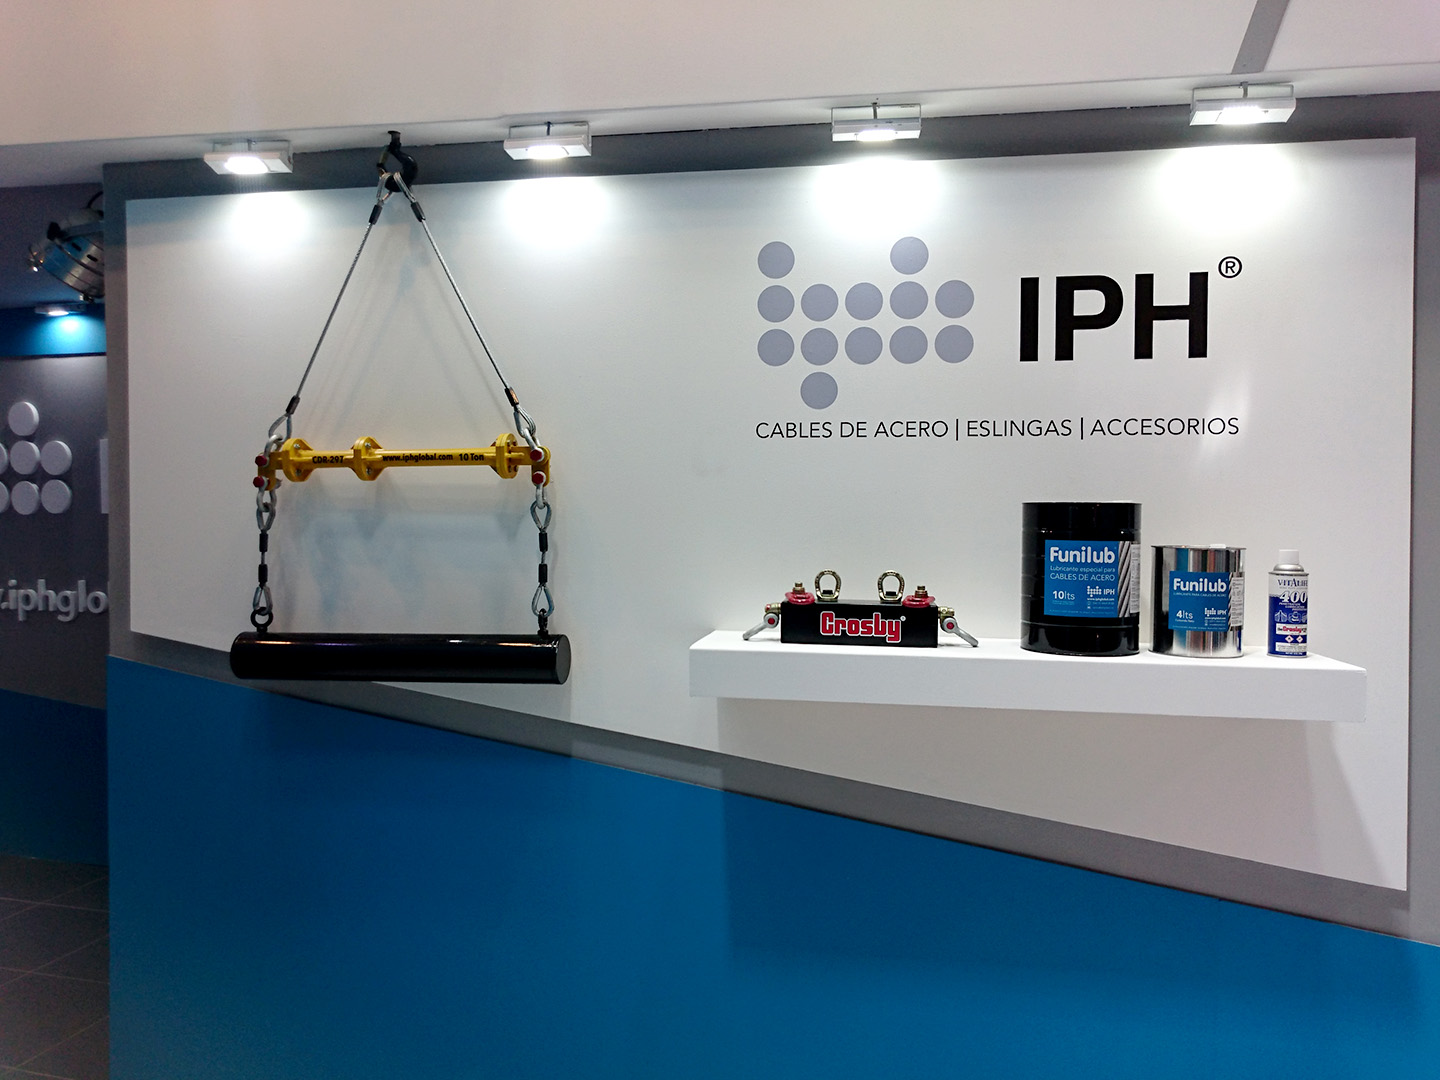 SUCCESSFUL EDITION FOR IPH AT AOG EXPO 20192